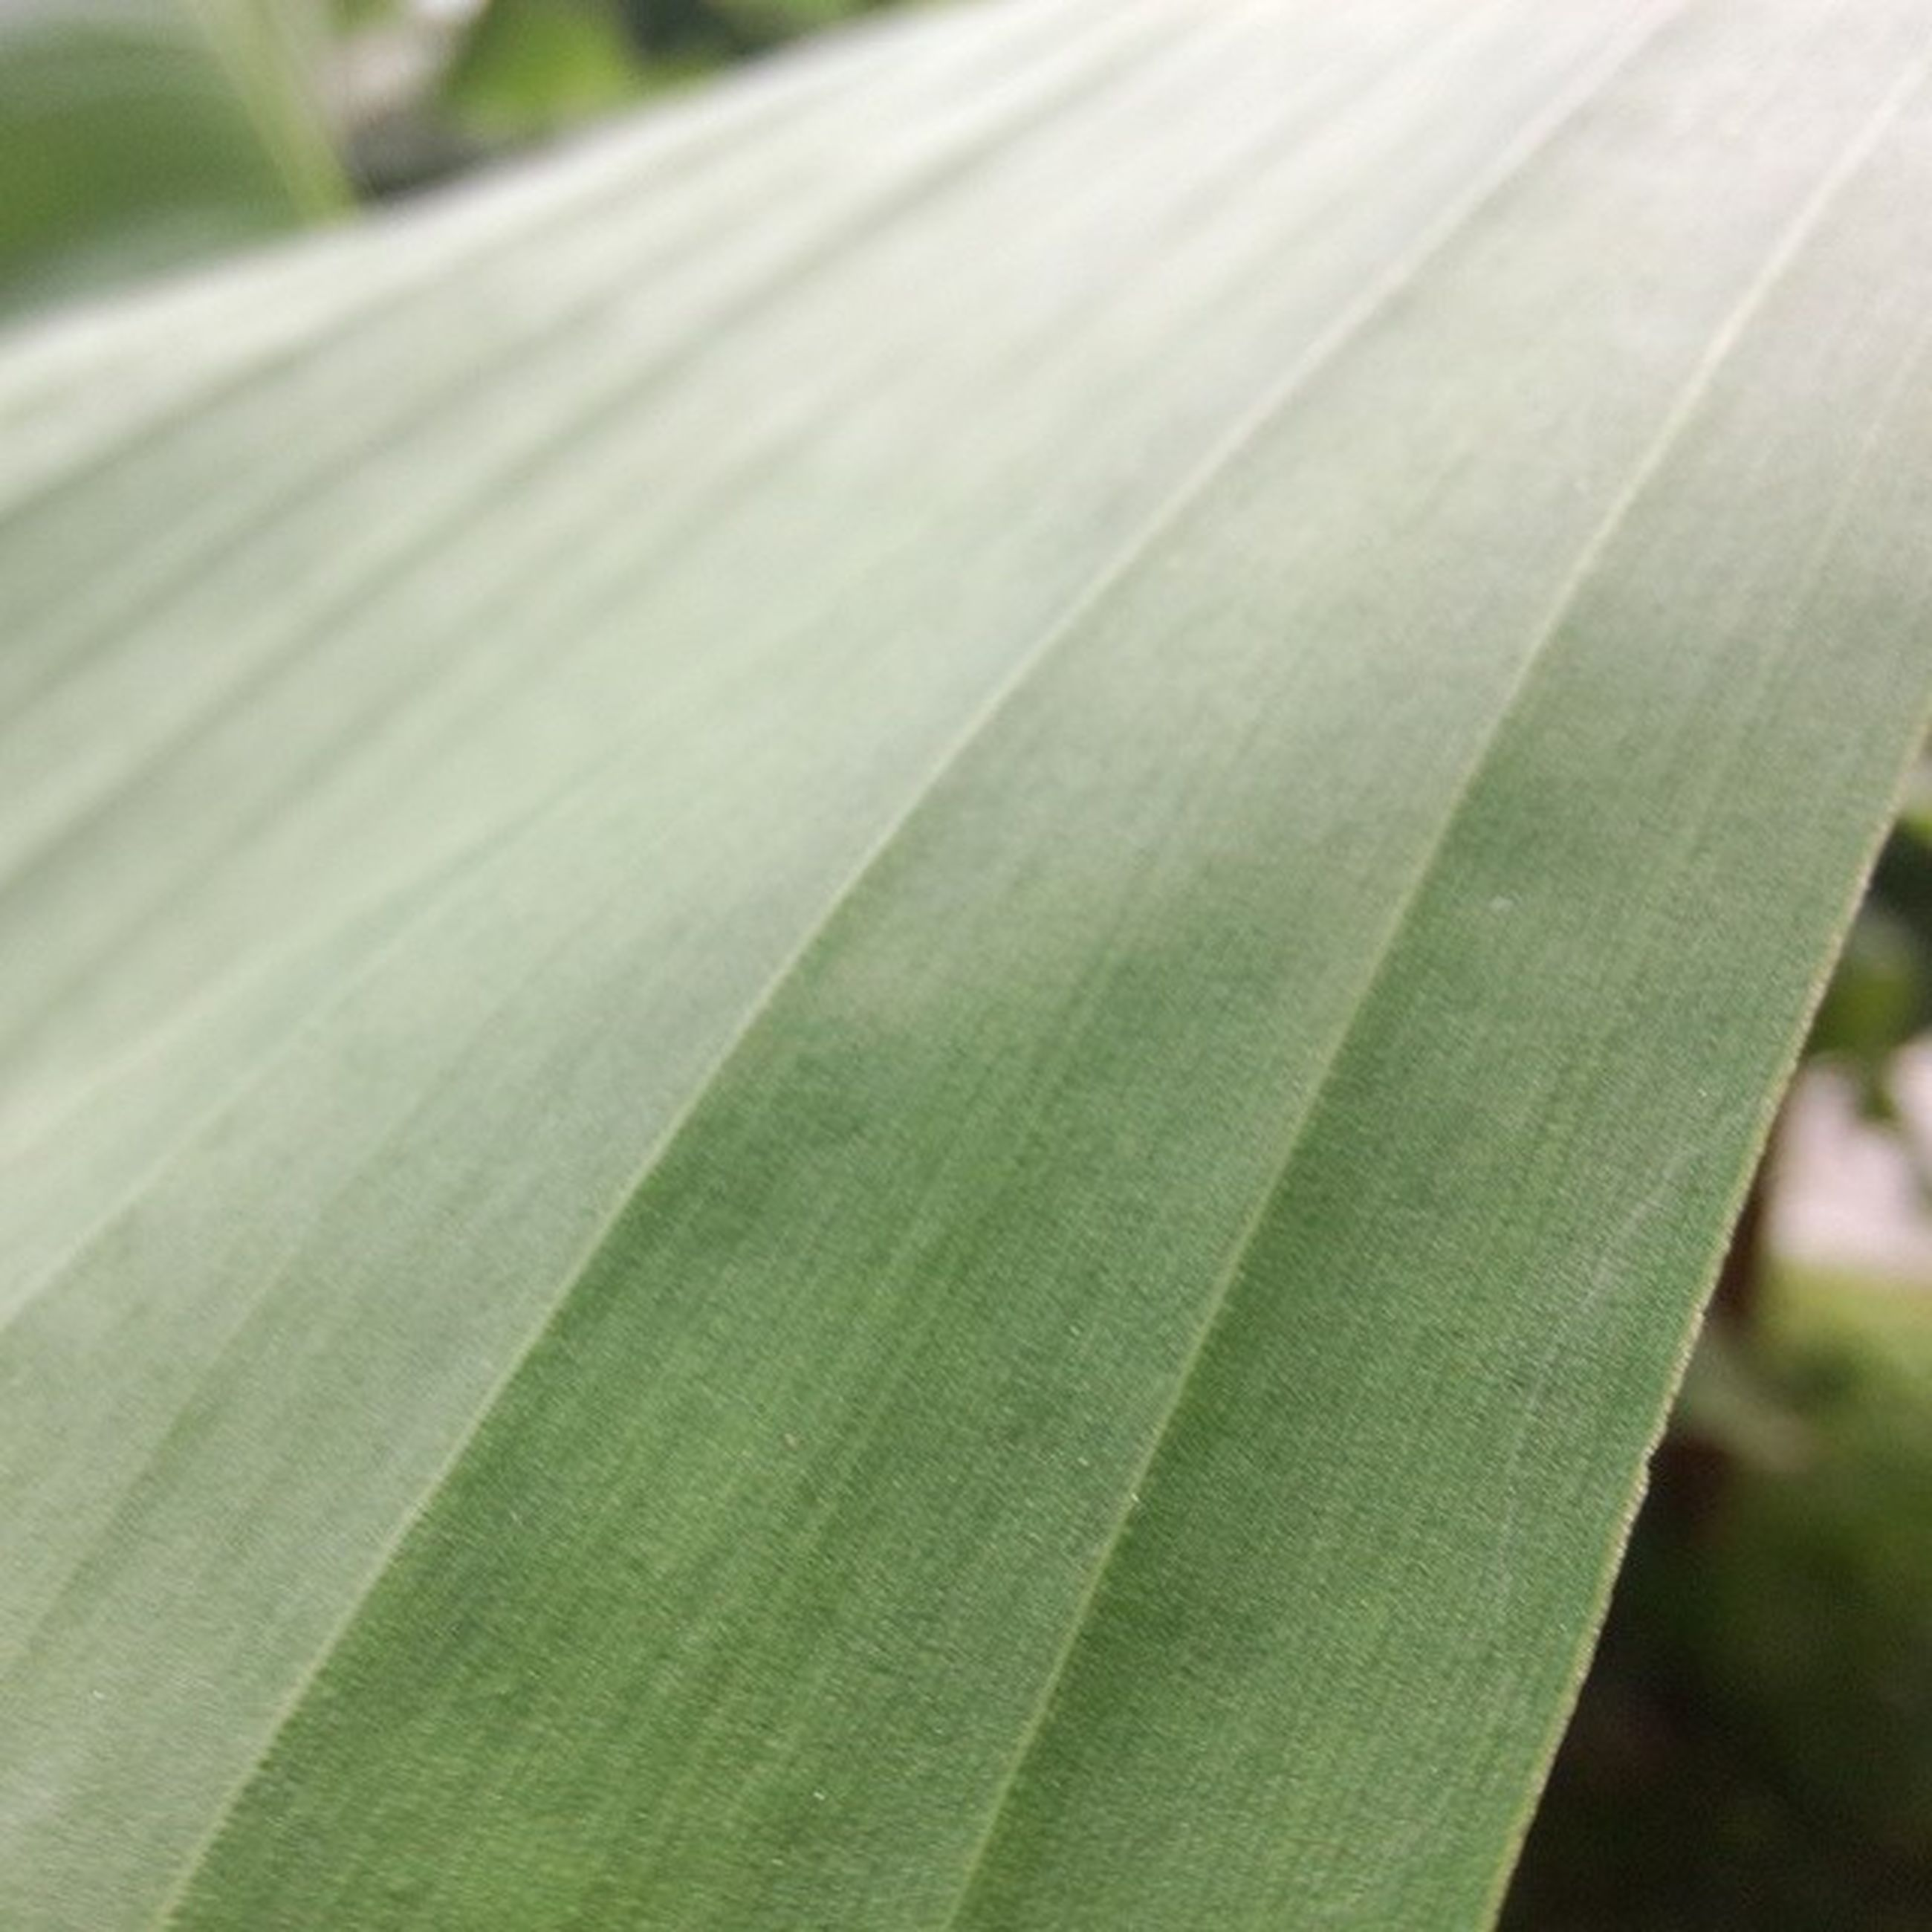 close-up, growth, leaf, focus on foreground, nature, green color, plant, beauty in nature, selective focus, freshness, day, fragility, no people, outdoors, natural pattern, sunlight, leaf vein, macro, green, pattern